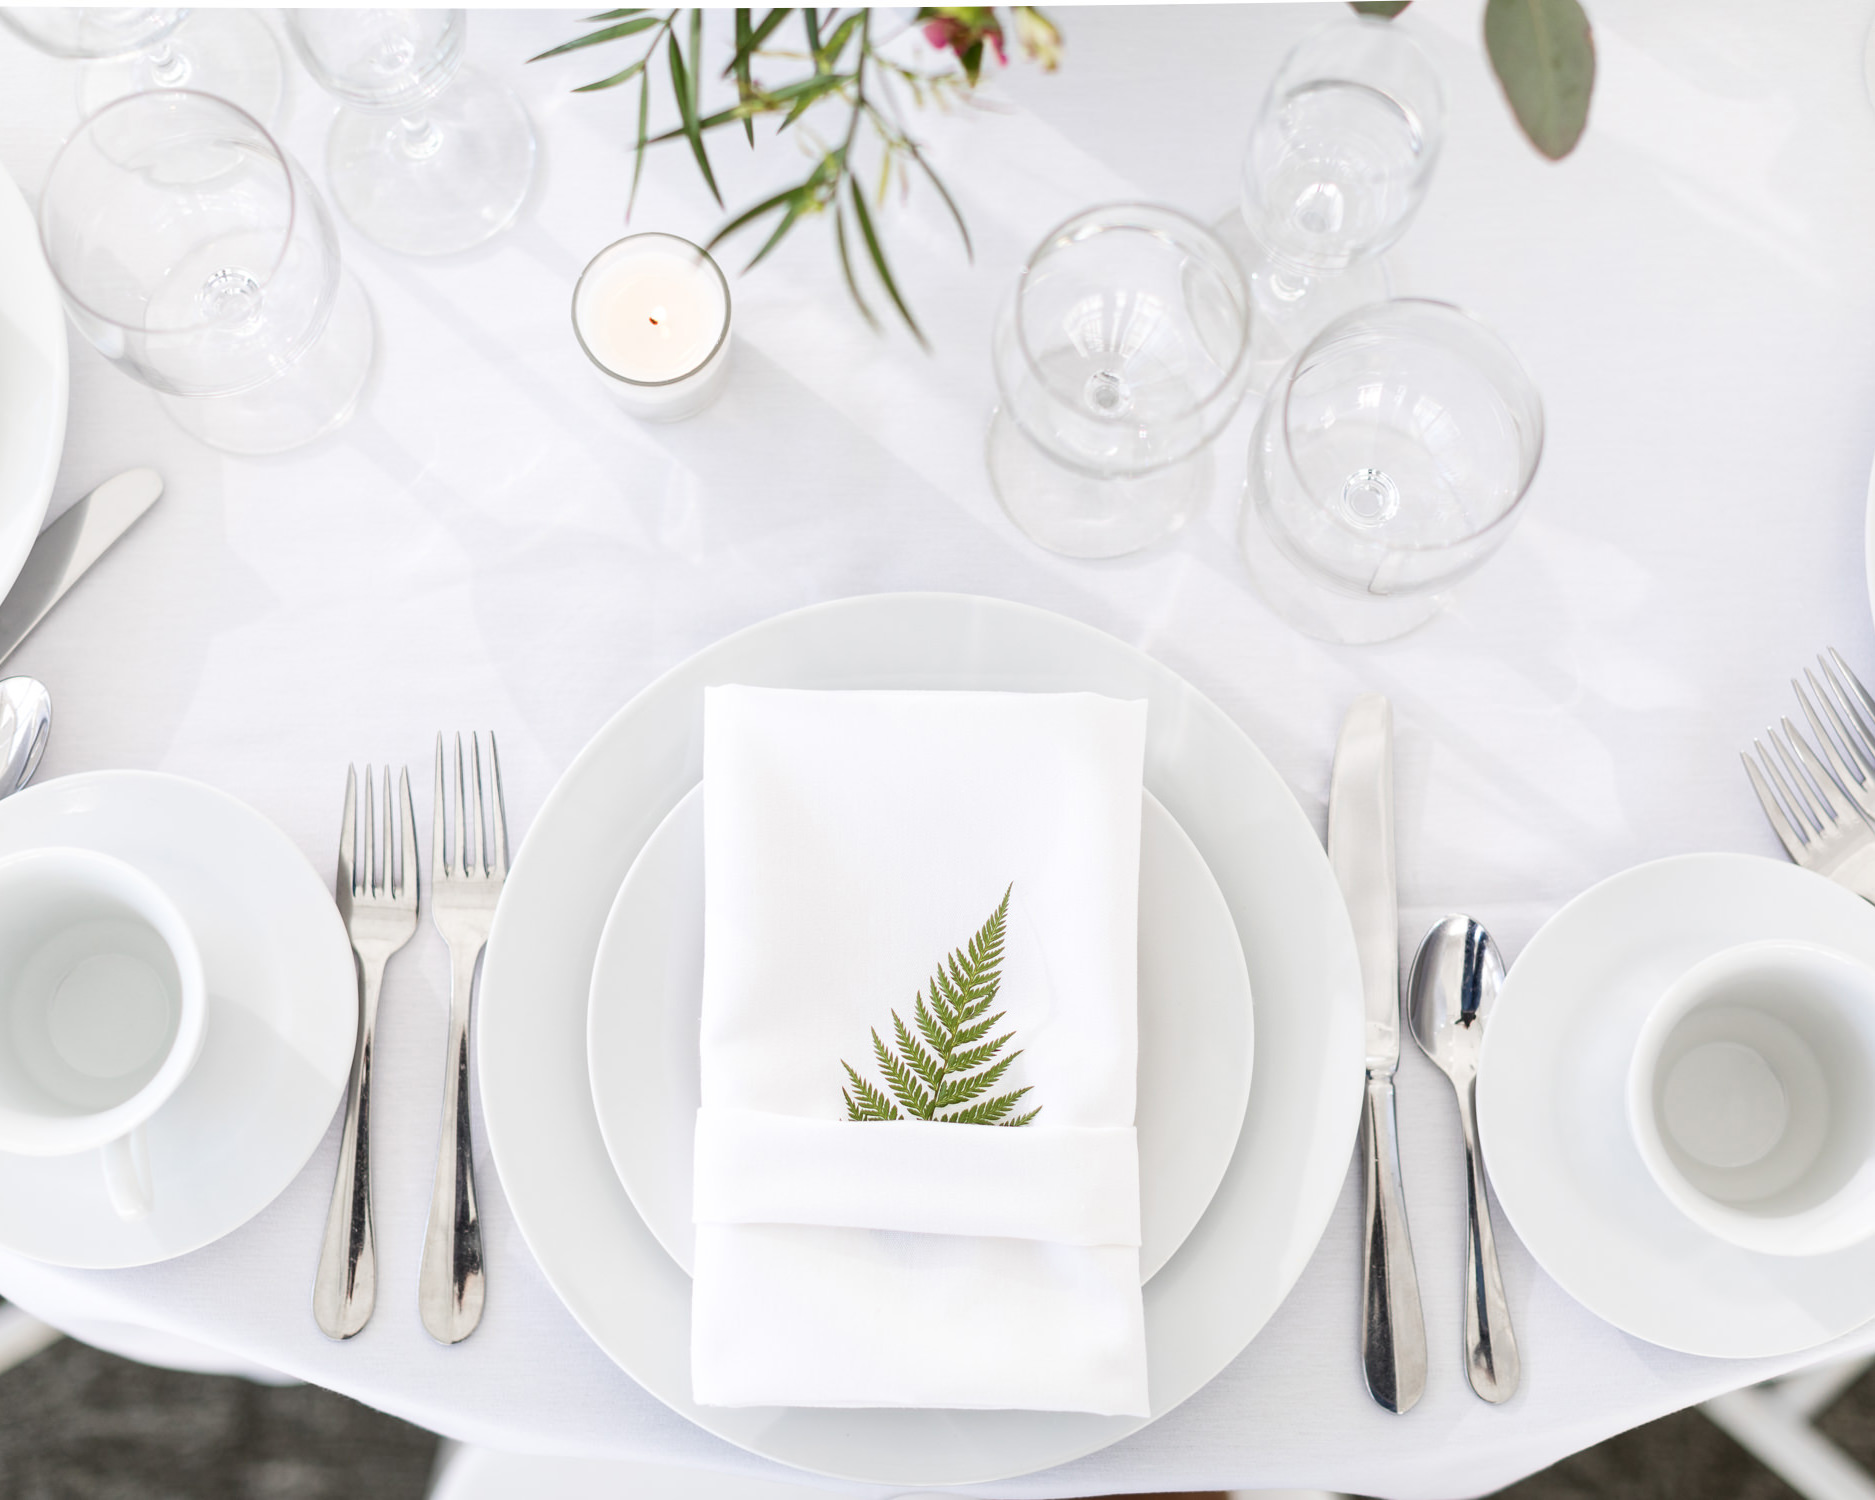 A green fern is tucked inside a white napkin in a styled wedding table setting at the Essex Resort by photographer Stina Booth